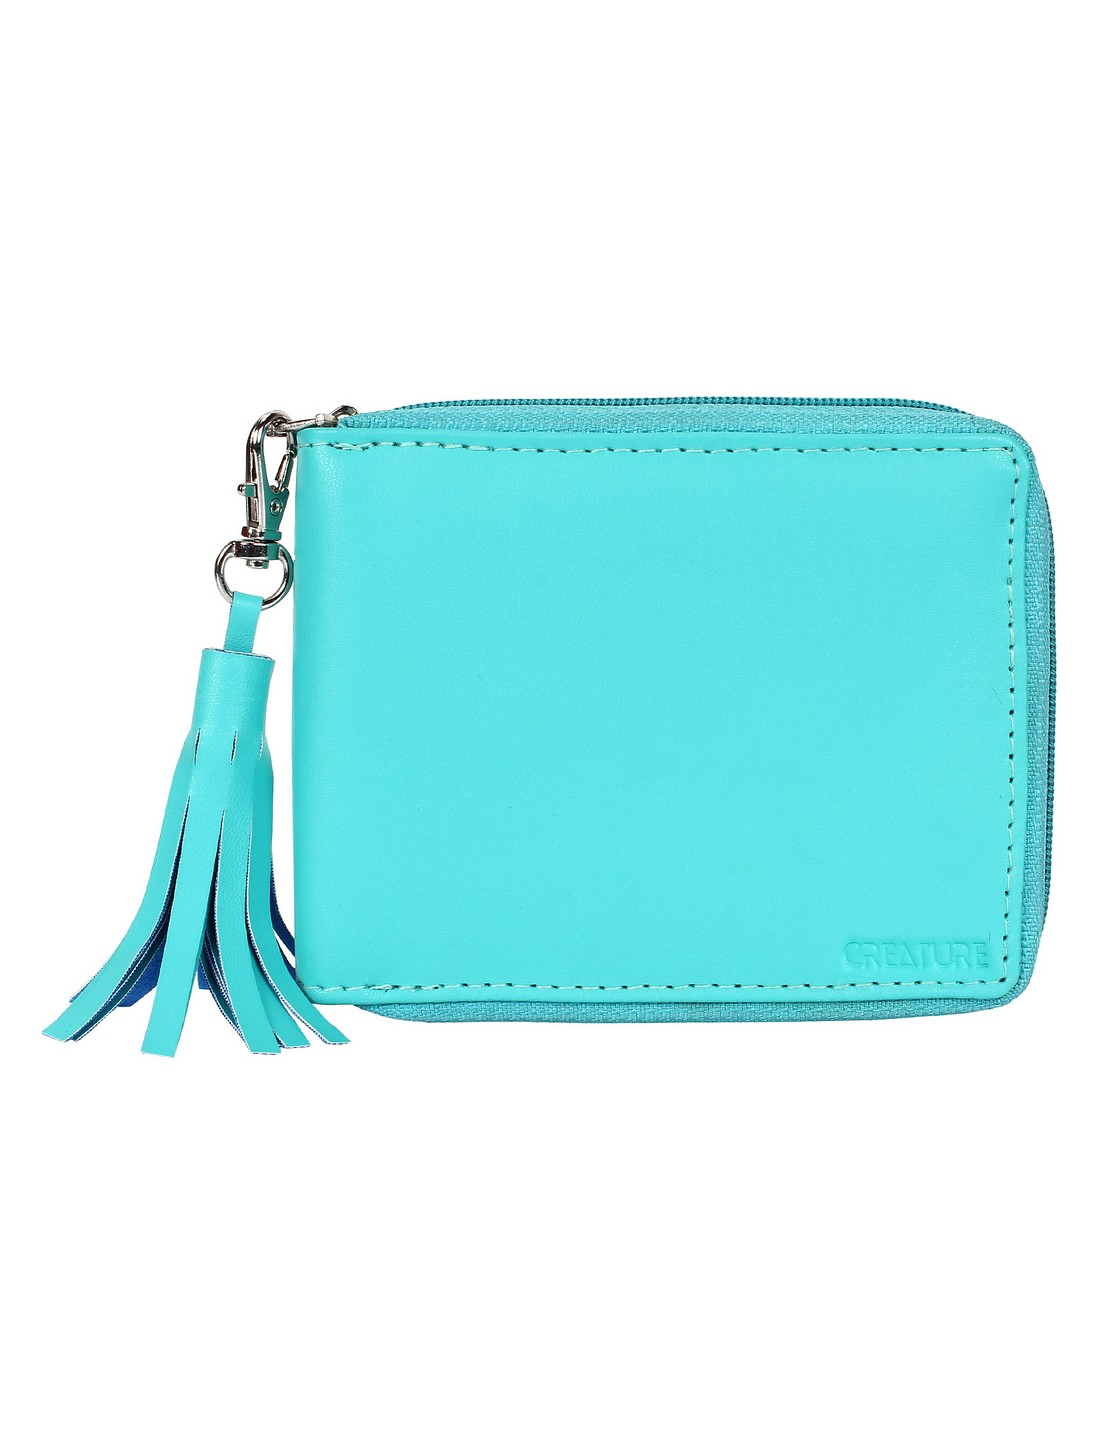 CREATURE   Creature Turquoise PU Leather Zipper Wallet for Women